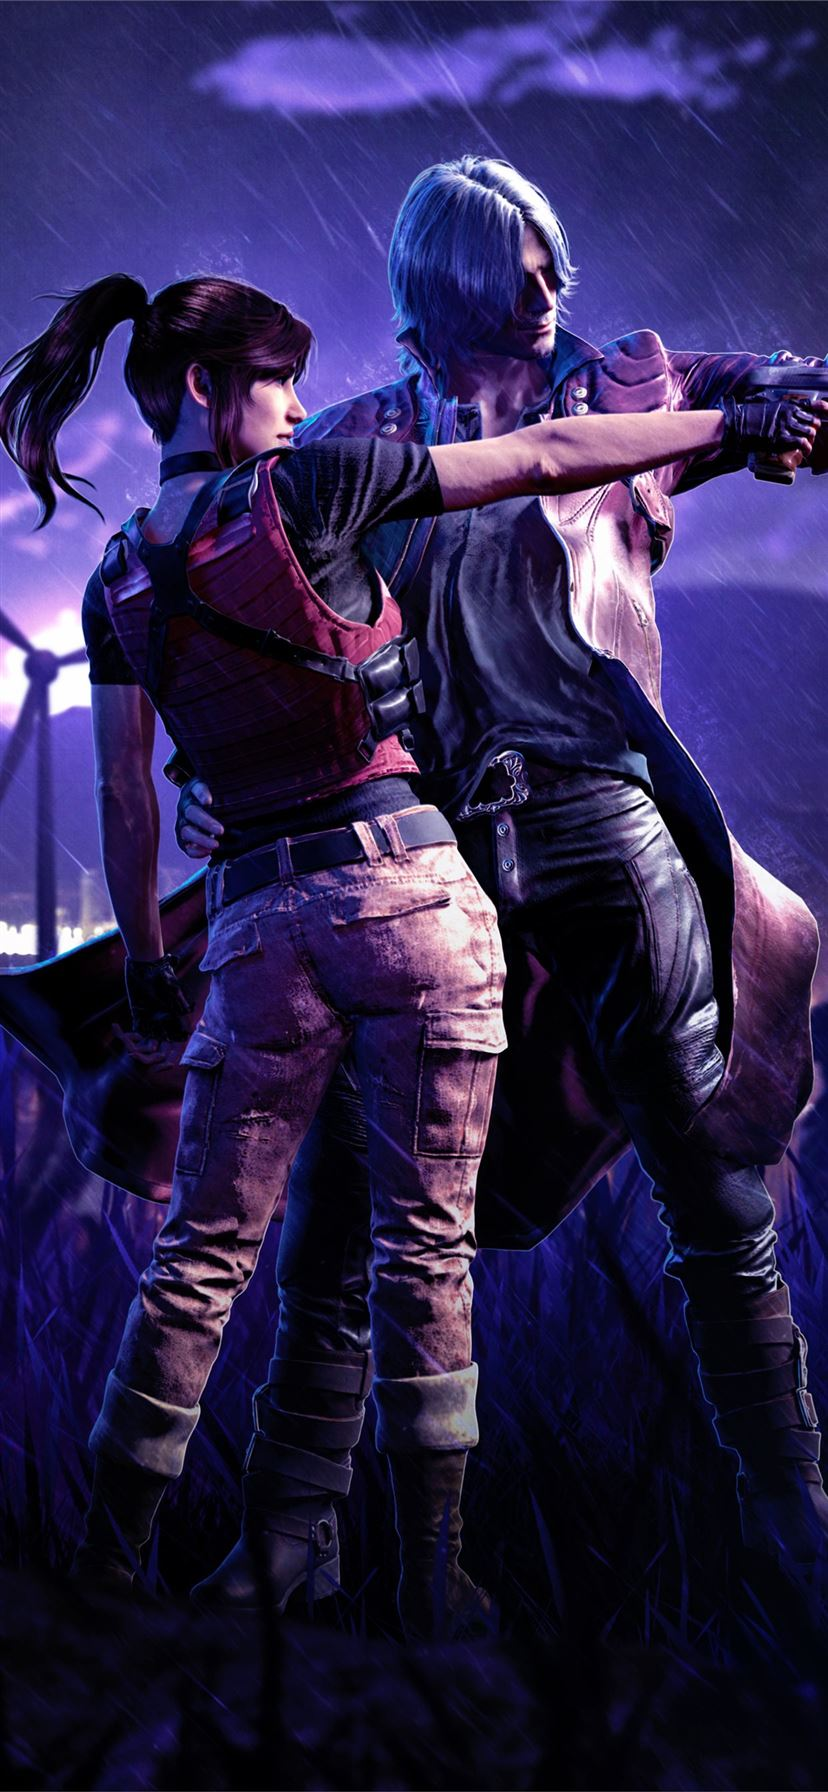 Resident Evil Devil May Cry 5 5k Iphone 11 Wallpapers Free Download